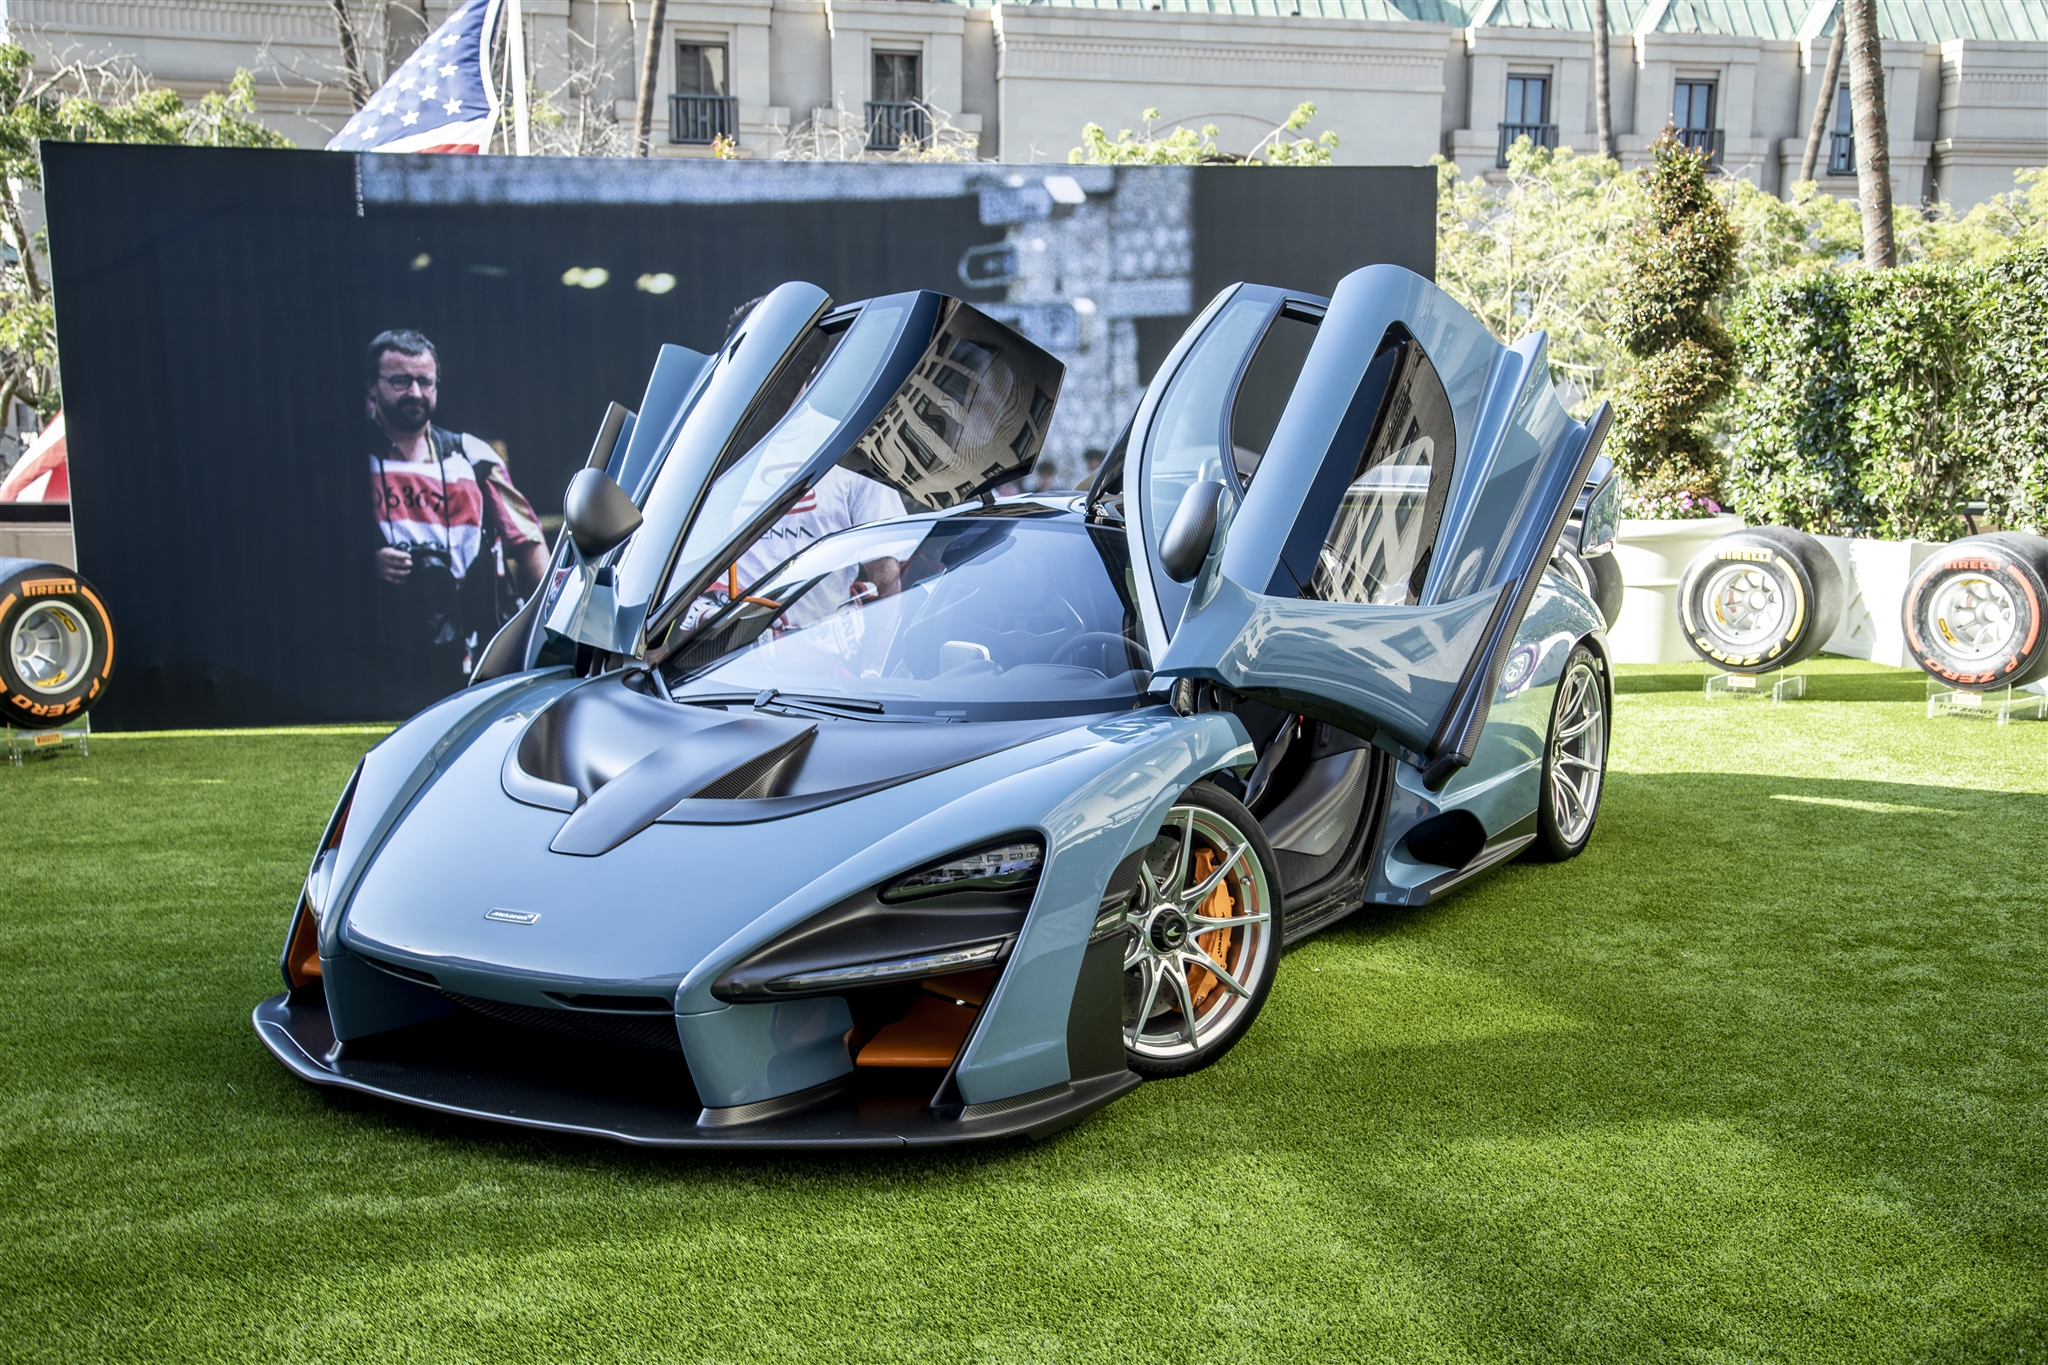 RODEO DRIVE CONCOURS D'ELEGANCE - O'GARA BEVERLY HILLS